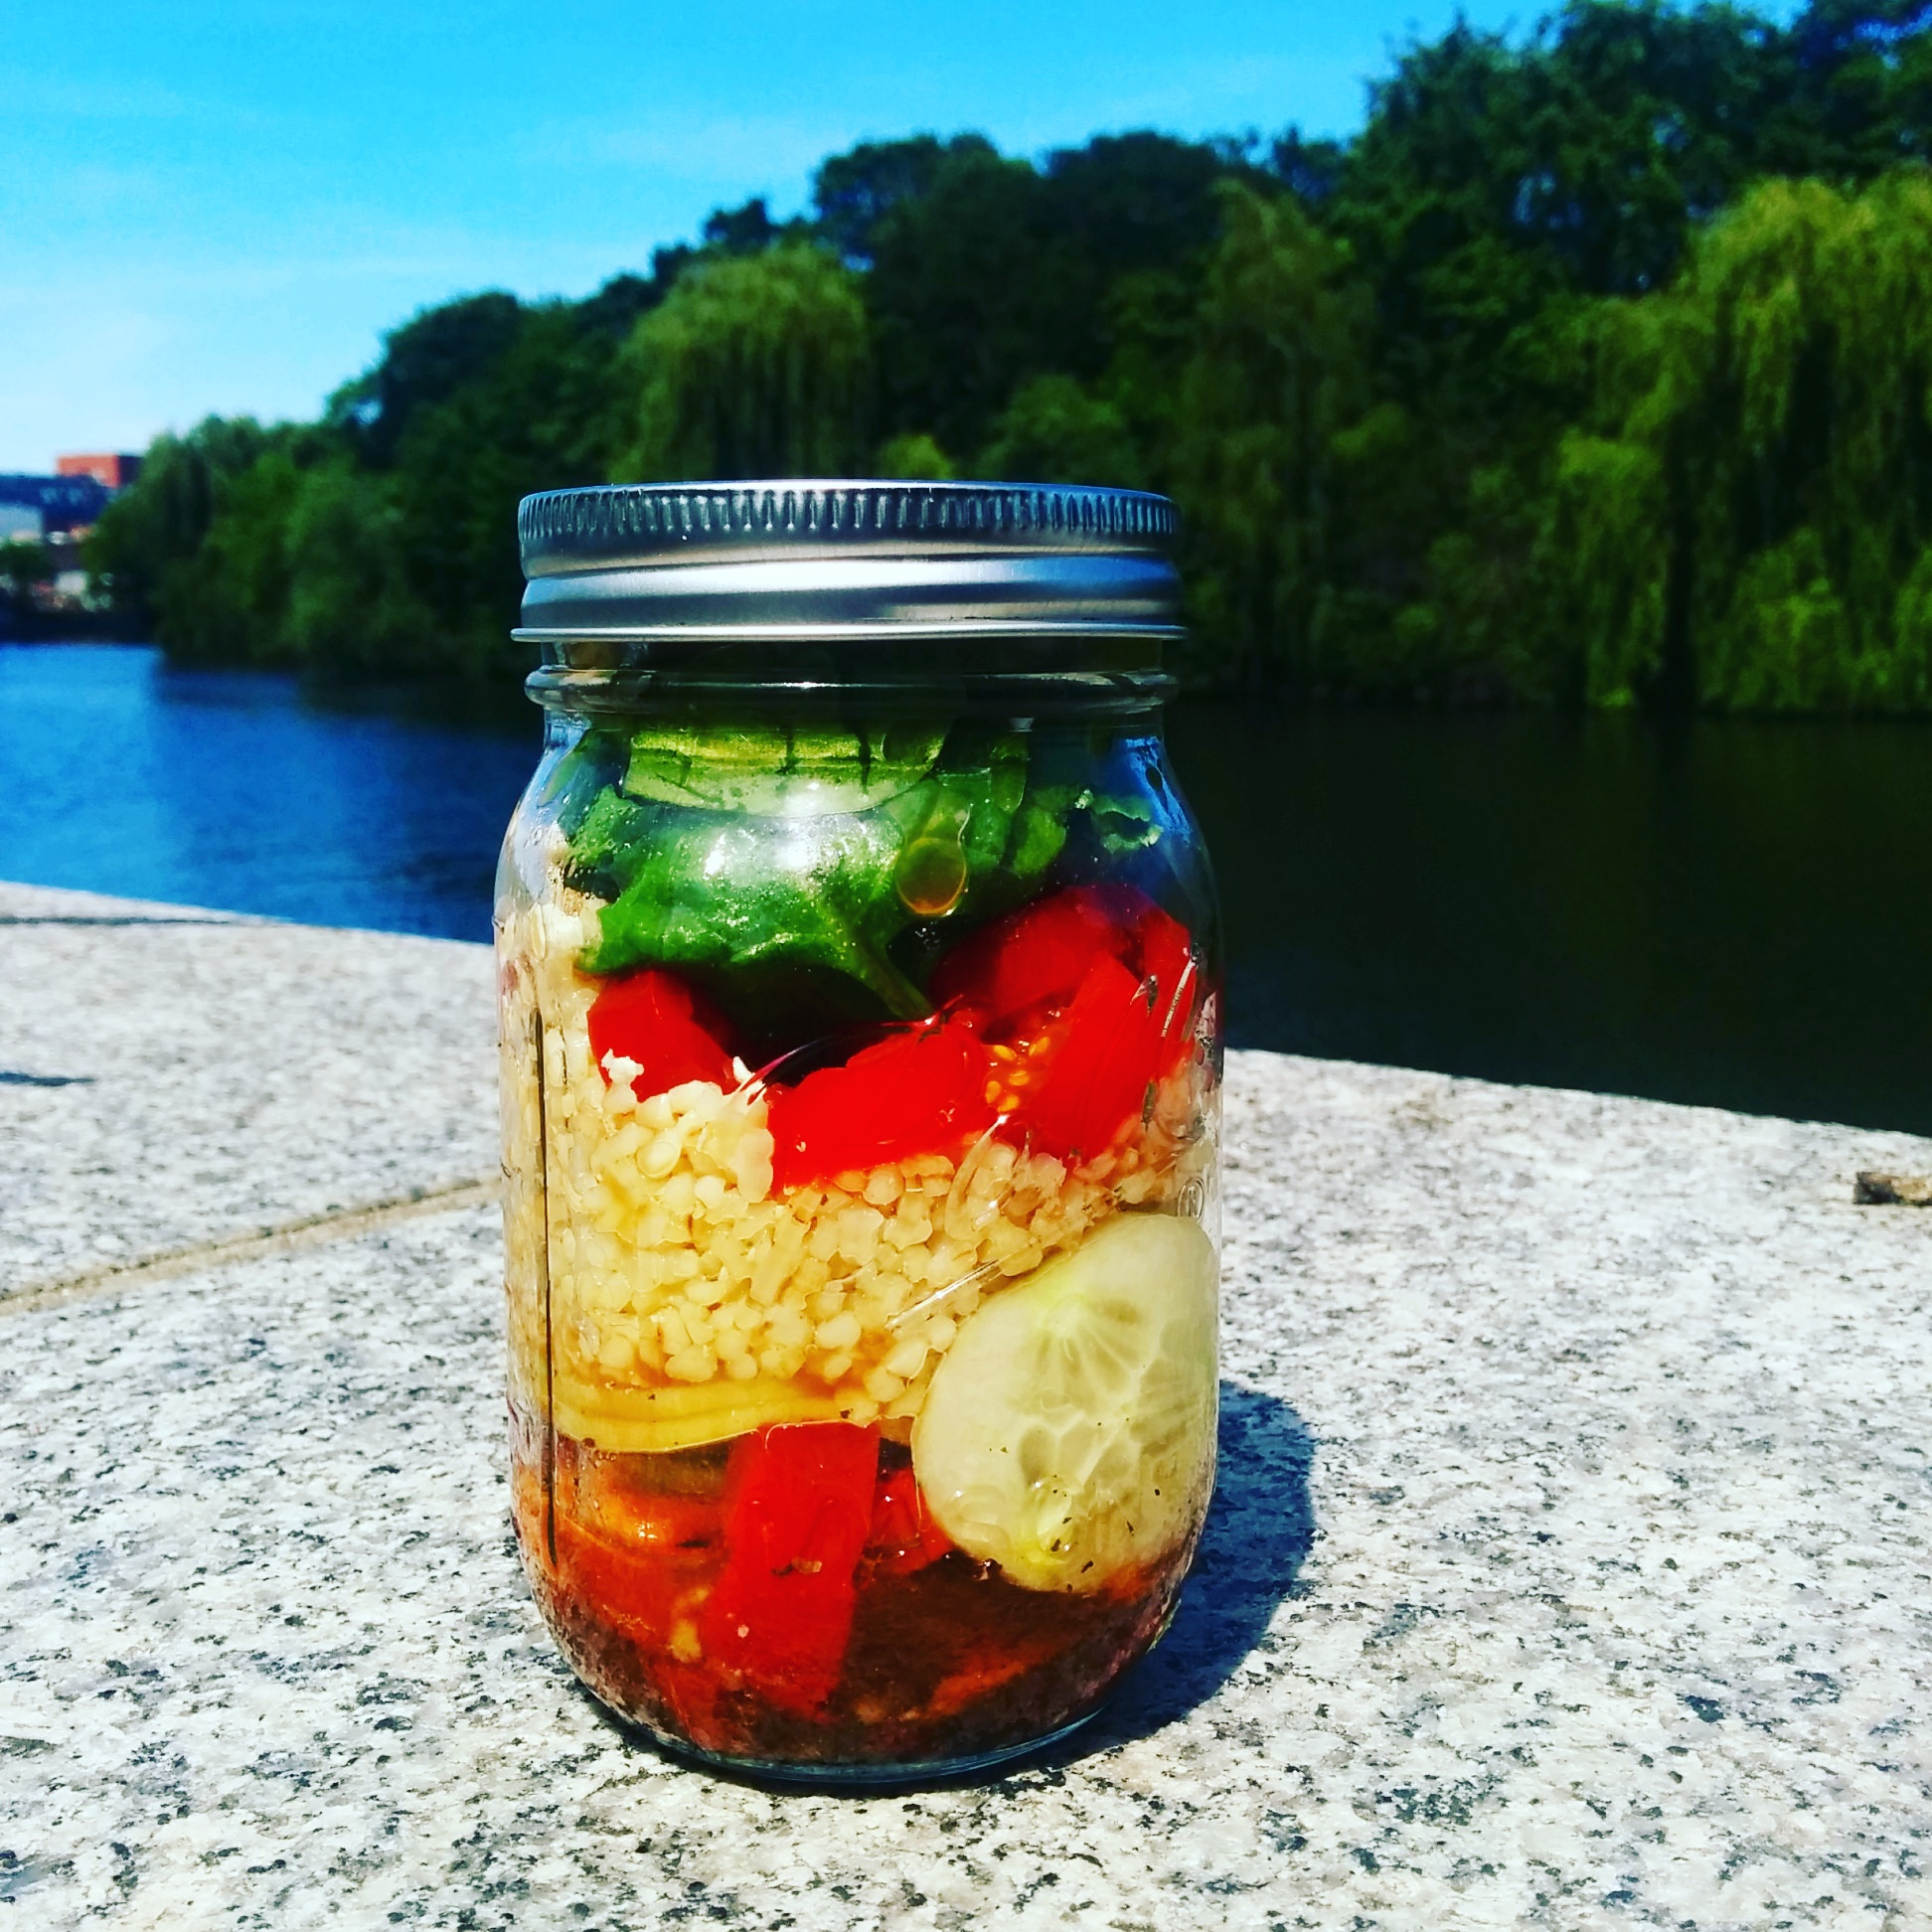 How to prepare a healthy lunch: Mason Jar Salad